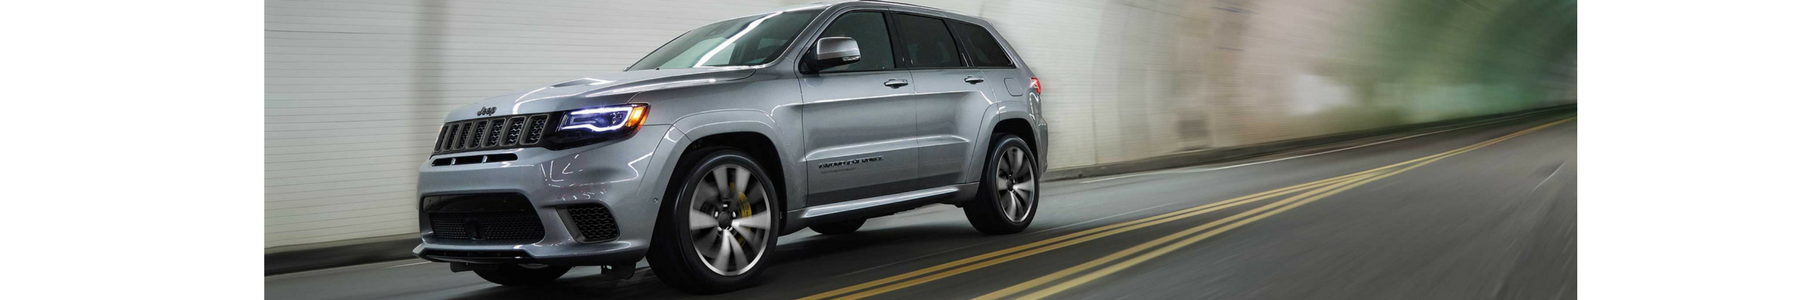 New 2018 Jeep Grand Cherokee near Indianapolis